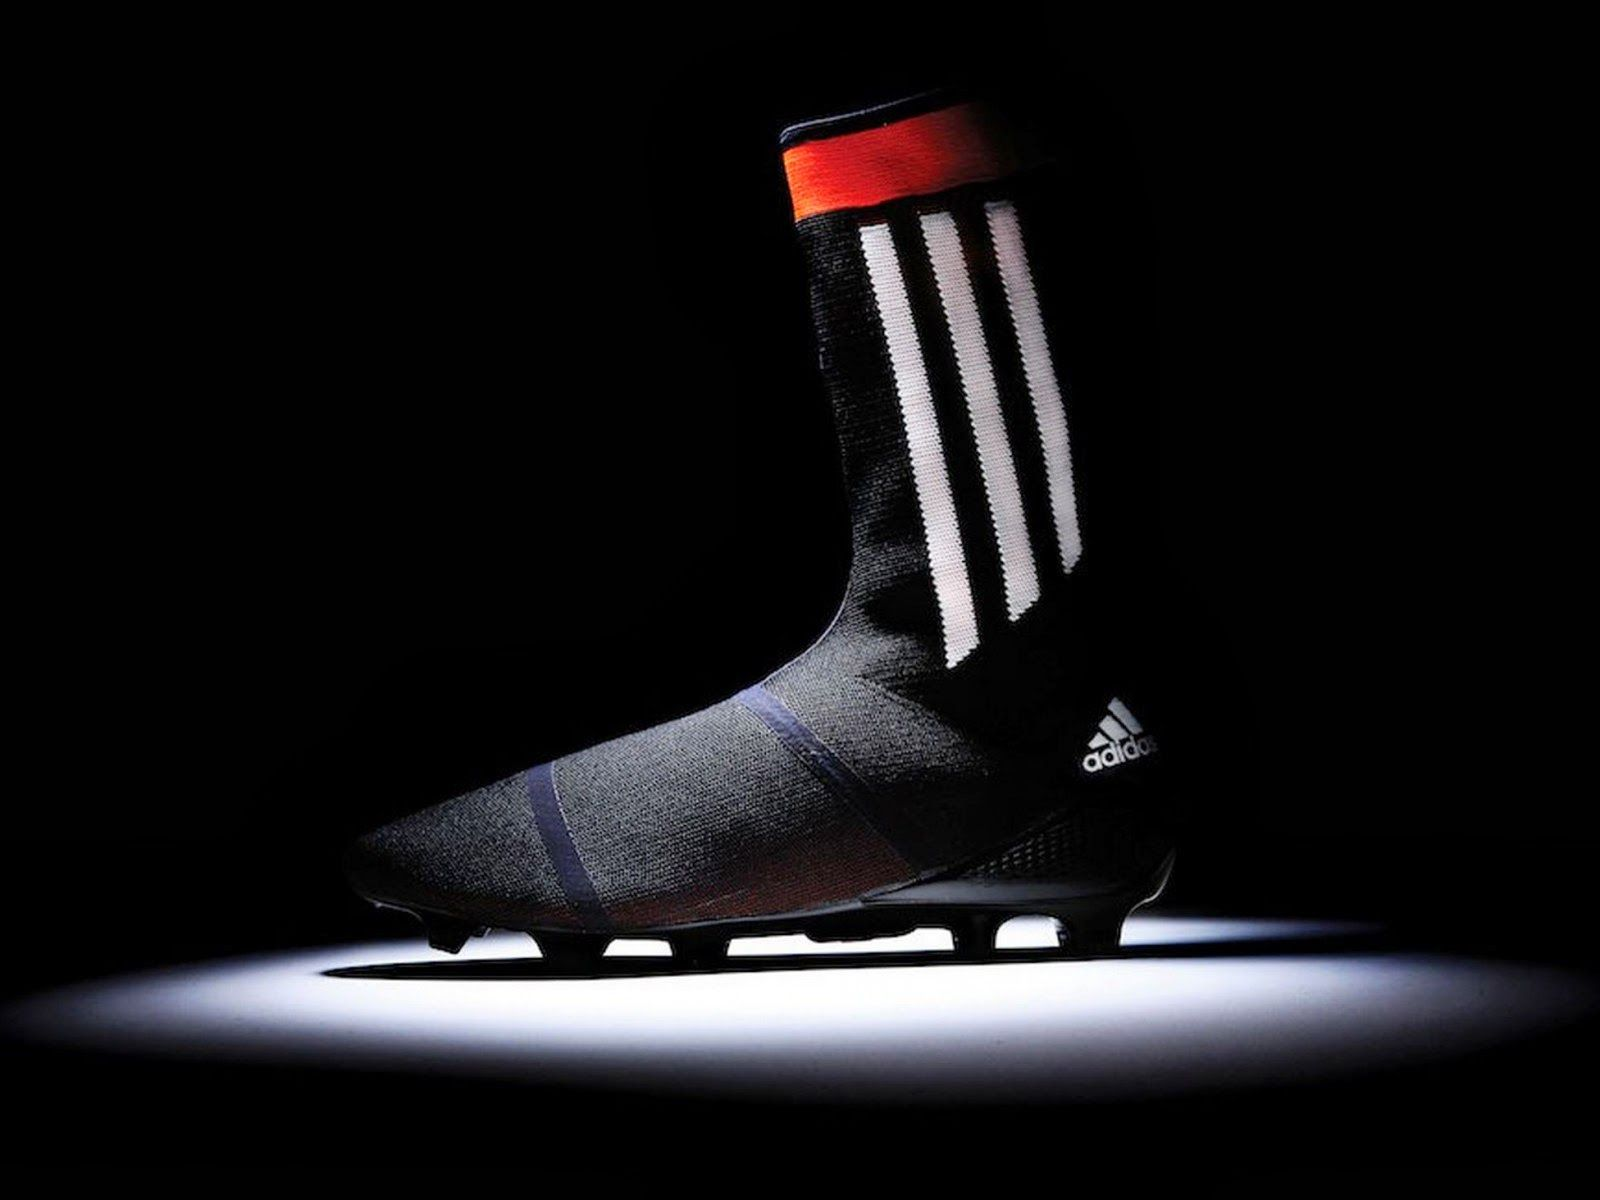 Adidas Boots HD Wallpapers 8